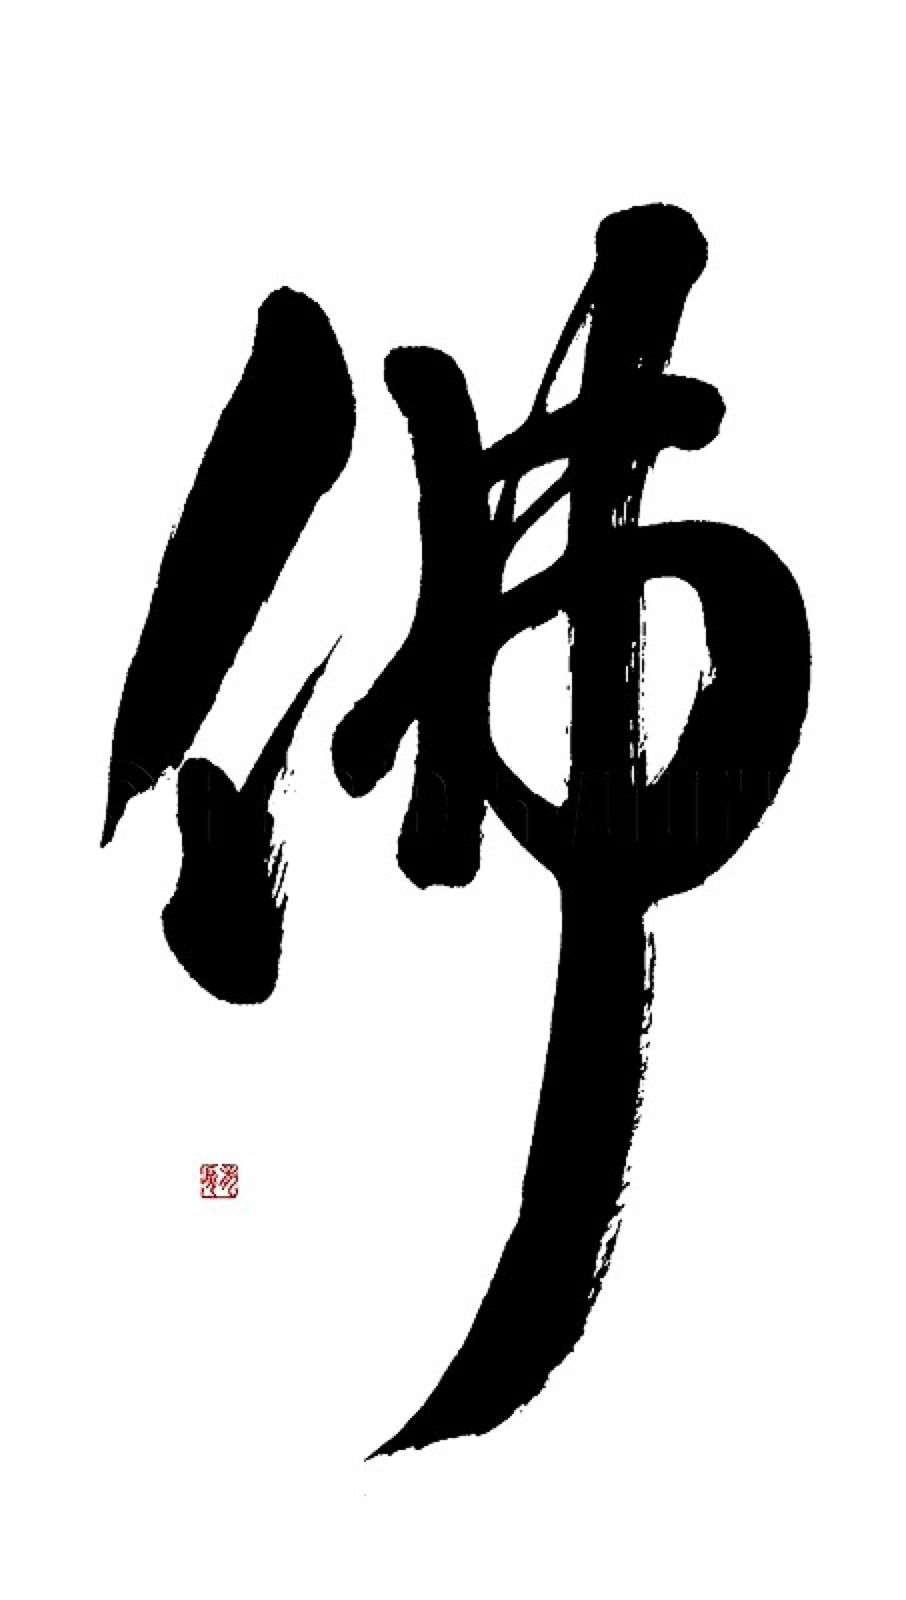 Buddha calligraphy by shodo artist ponte ryuurui if you enjoy arts and crafts youll will love this cool info buycottarizona Image collections